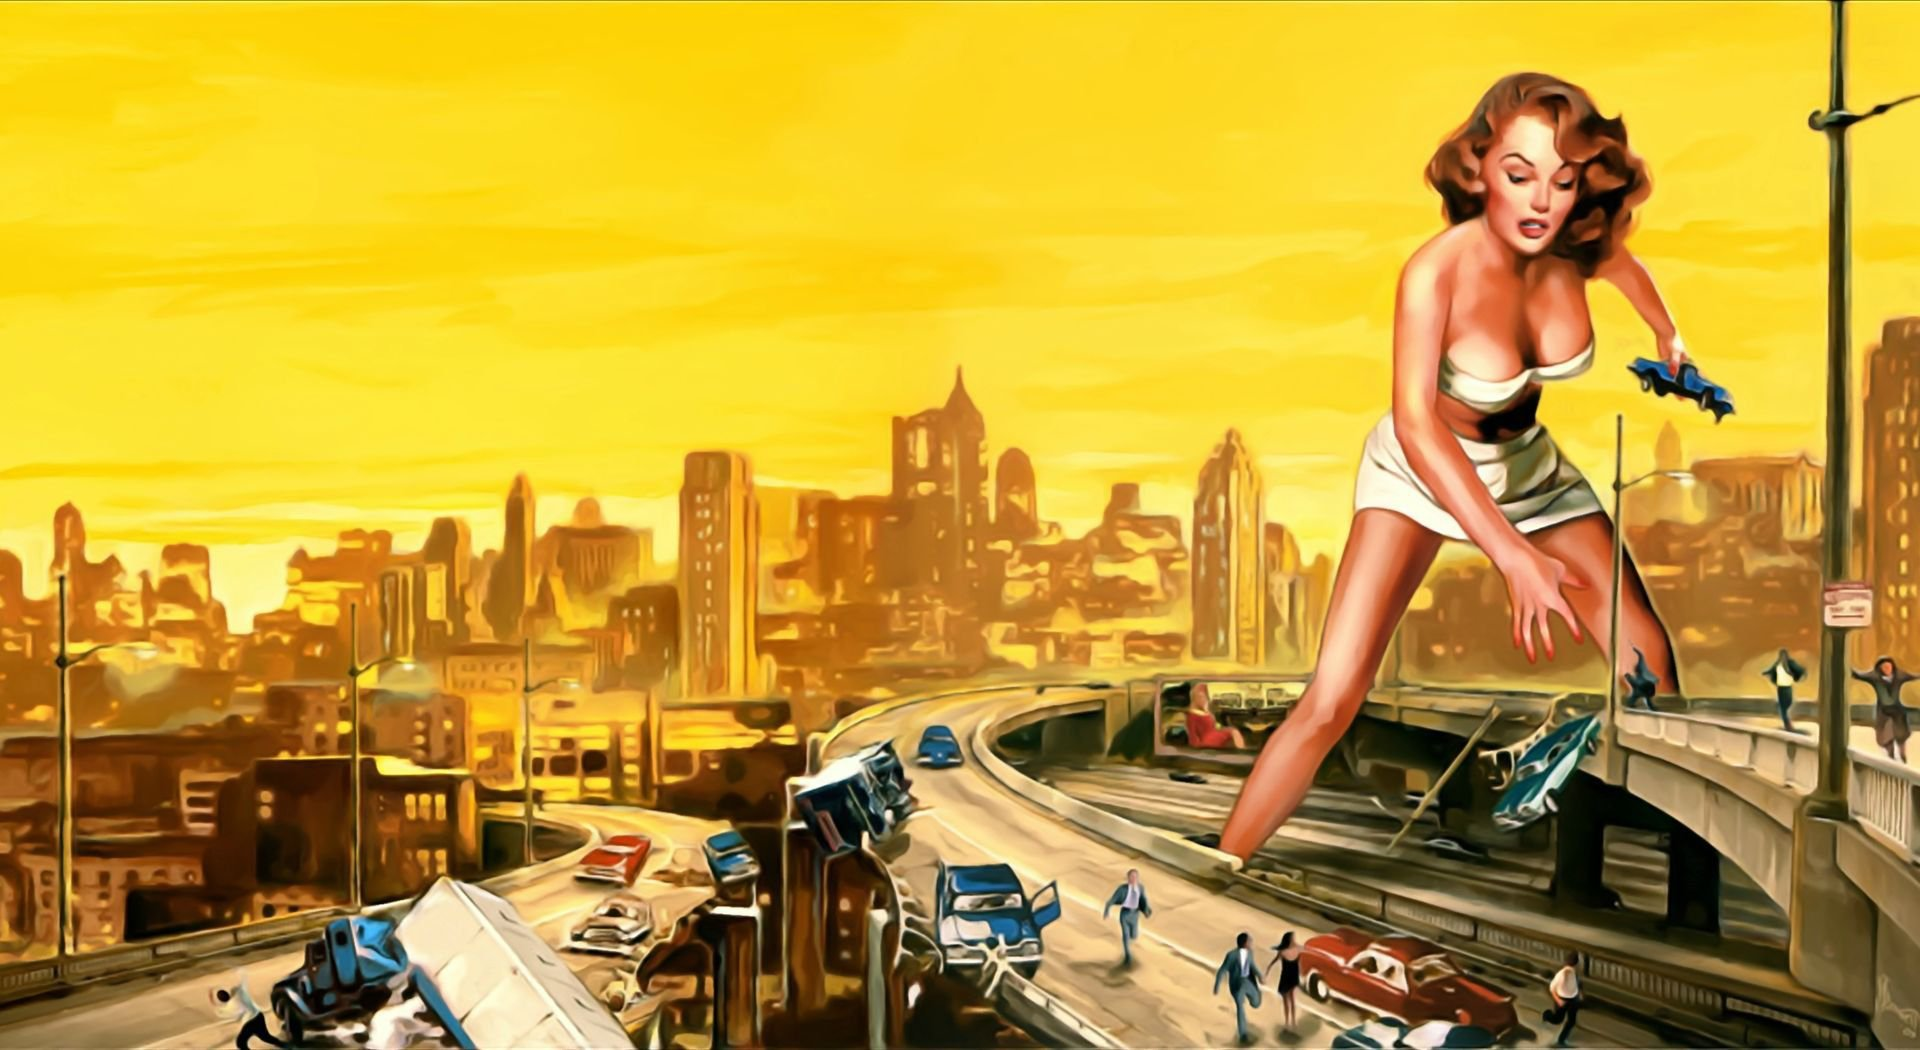 Pin Up Styled Girl Destroying A City Hd Wallpaper